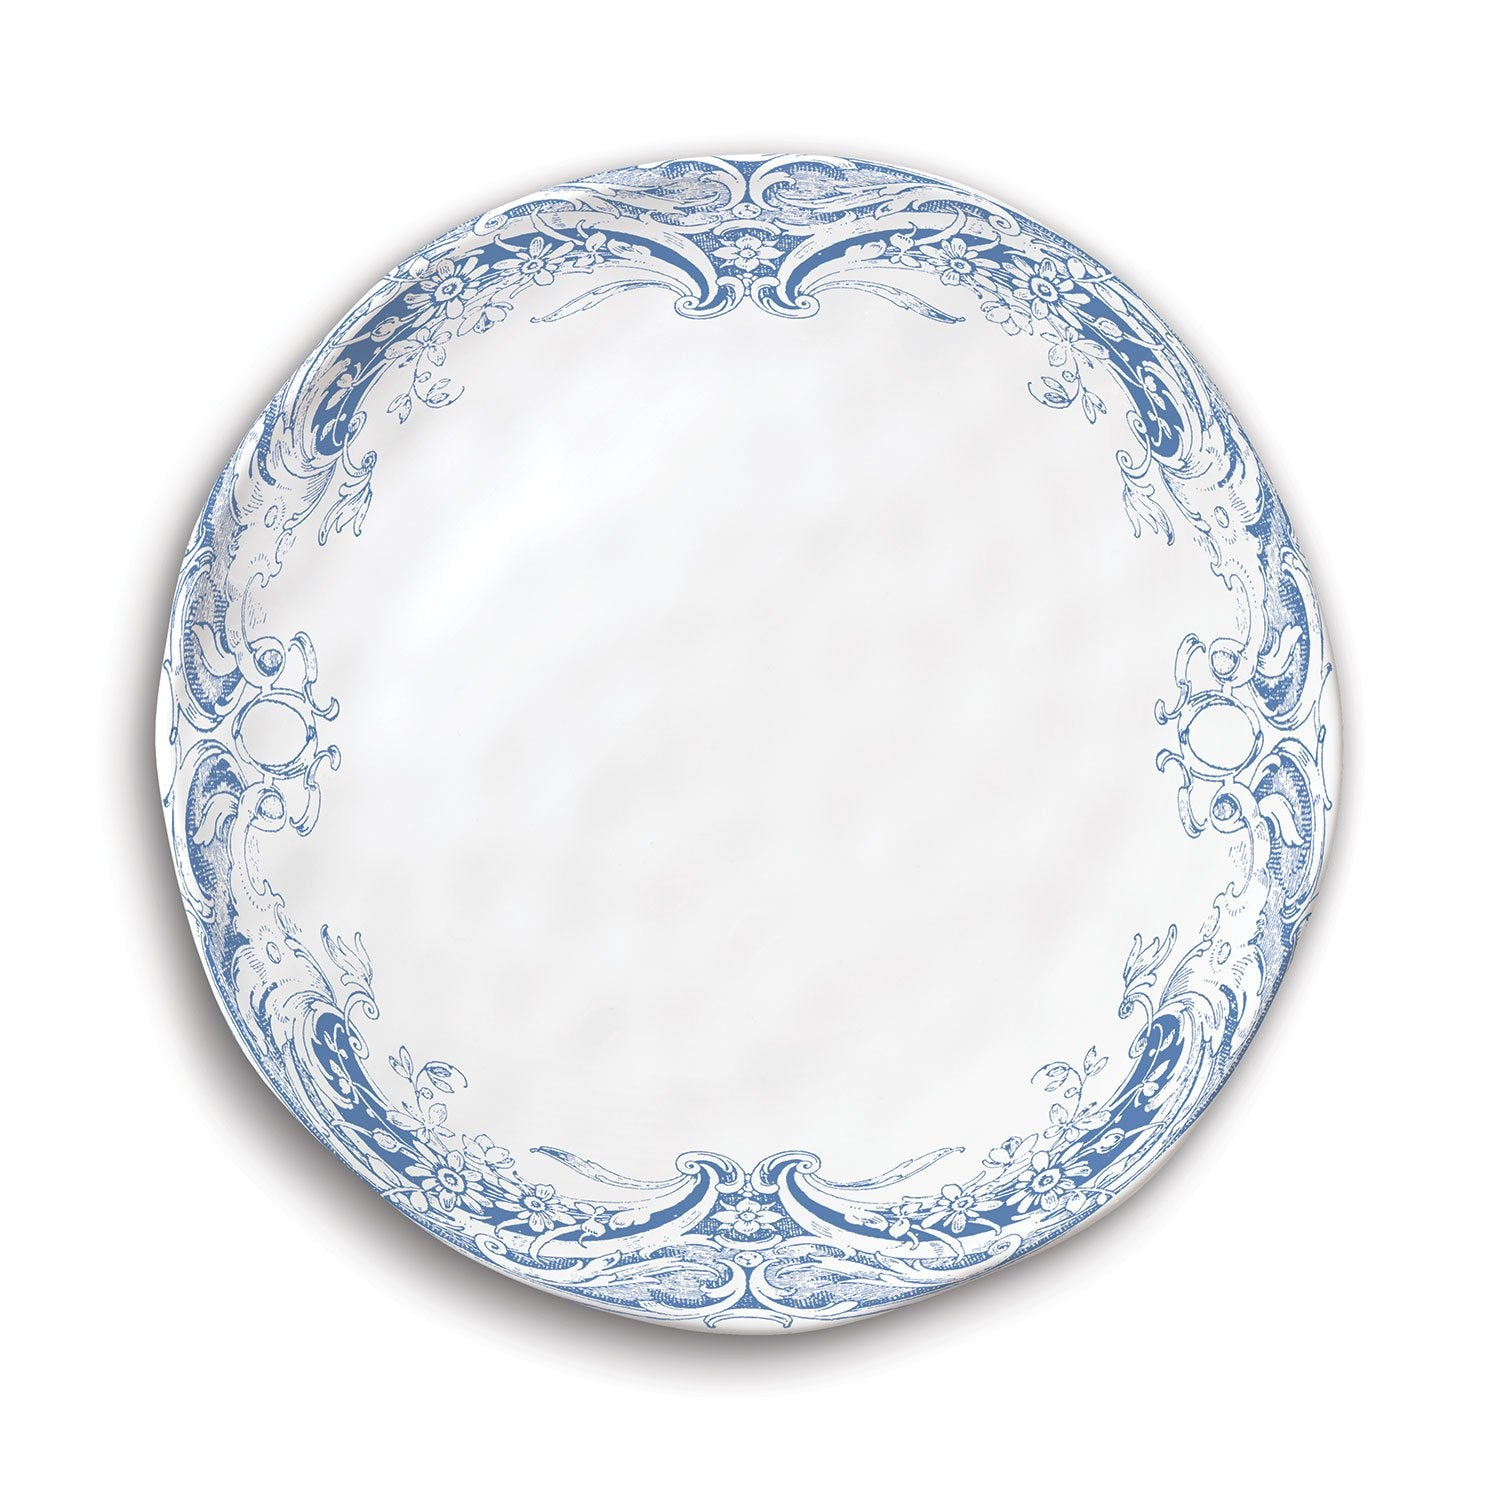 Antique Scroll Melamine Accent Plate